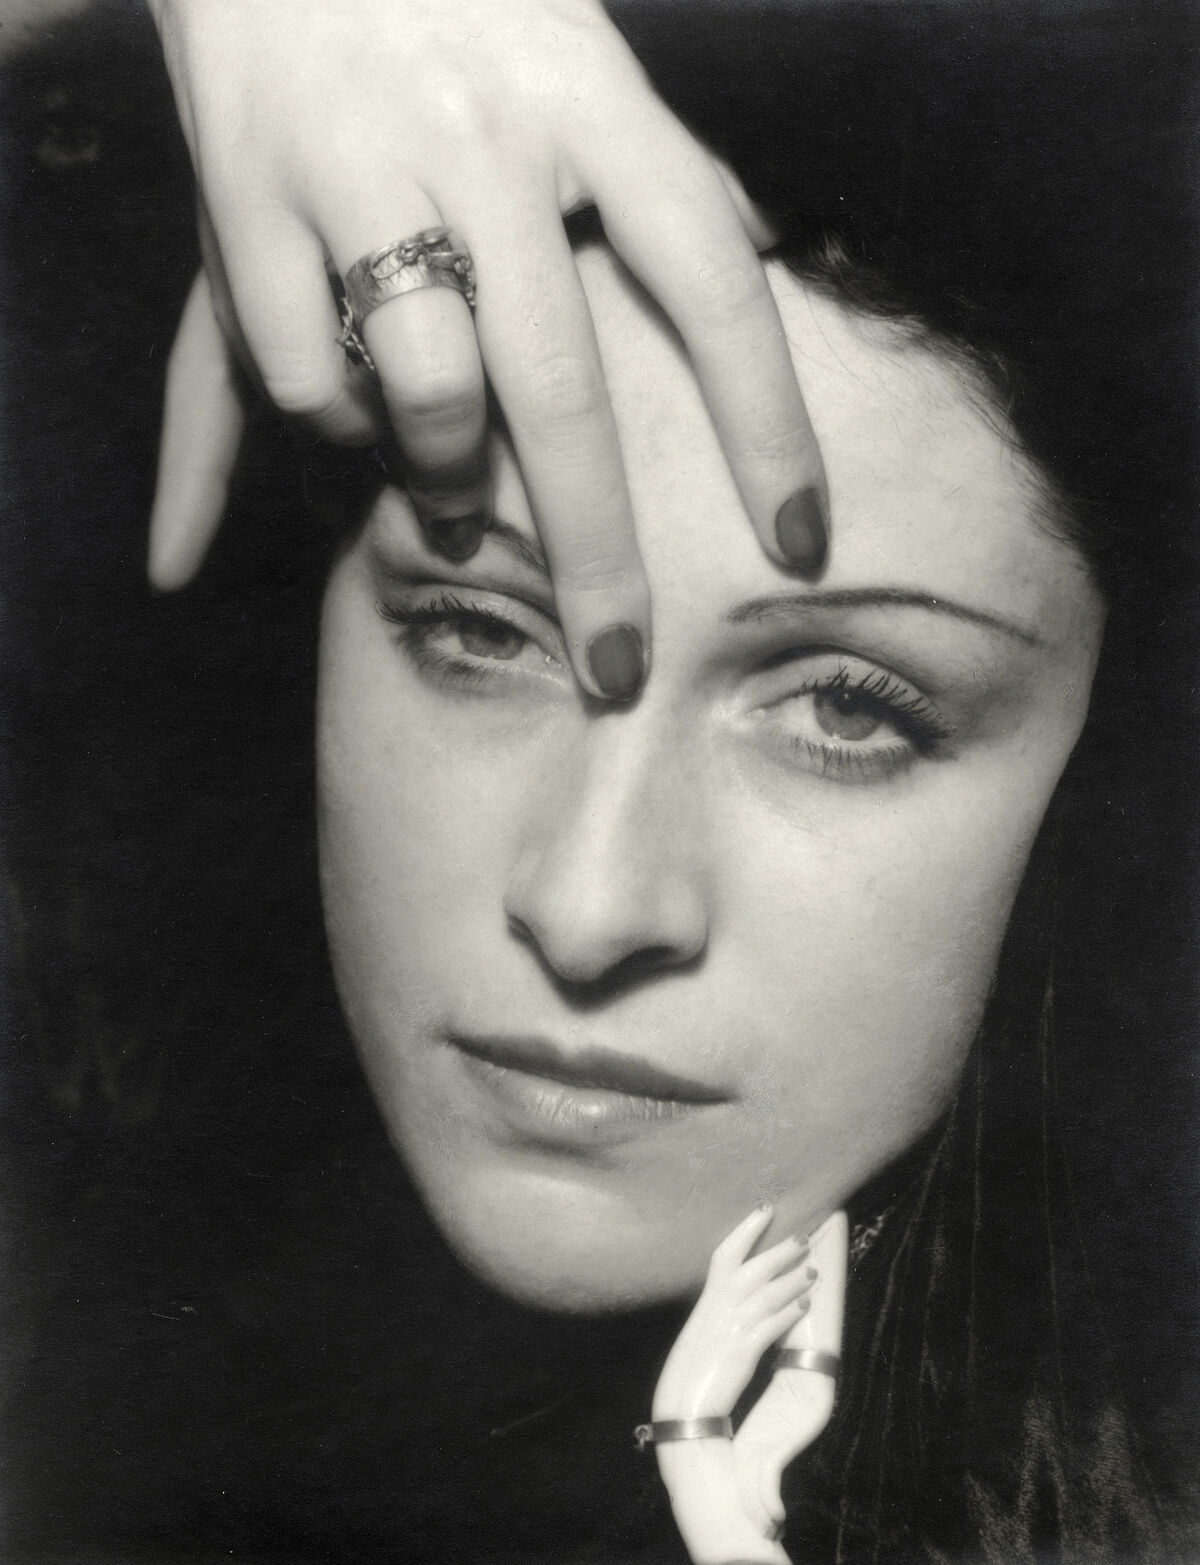 Man Ray, Portrait of Dora Maar, 1936. Image via The Red List.